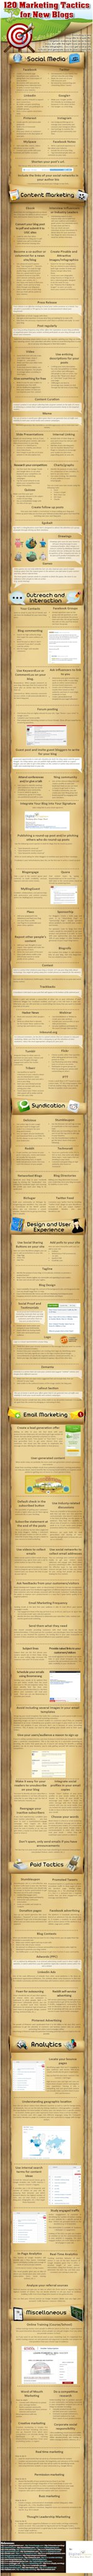 120 Marketing Tactics For Your Blog (Infographic) image 120 Marketing Tactics for New Blogs